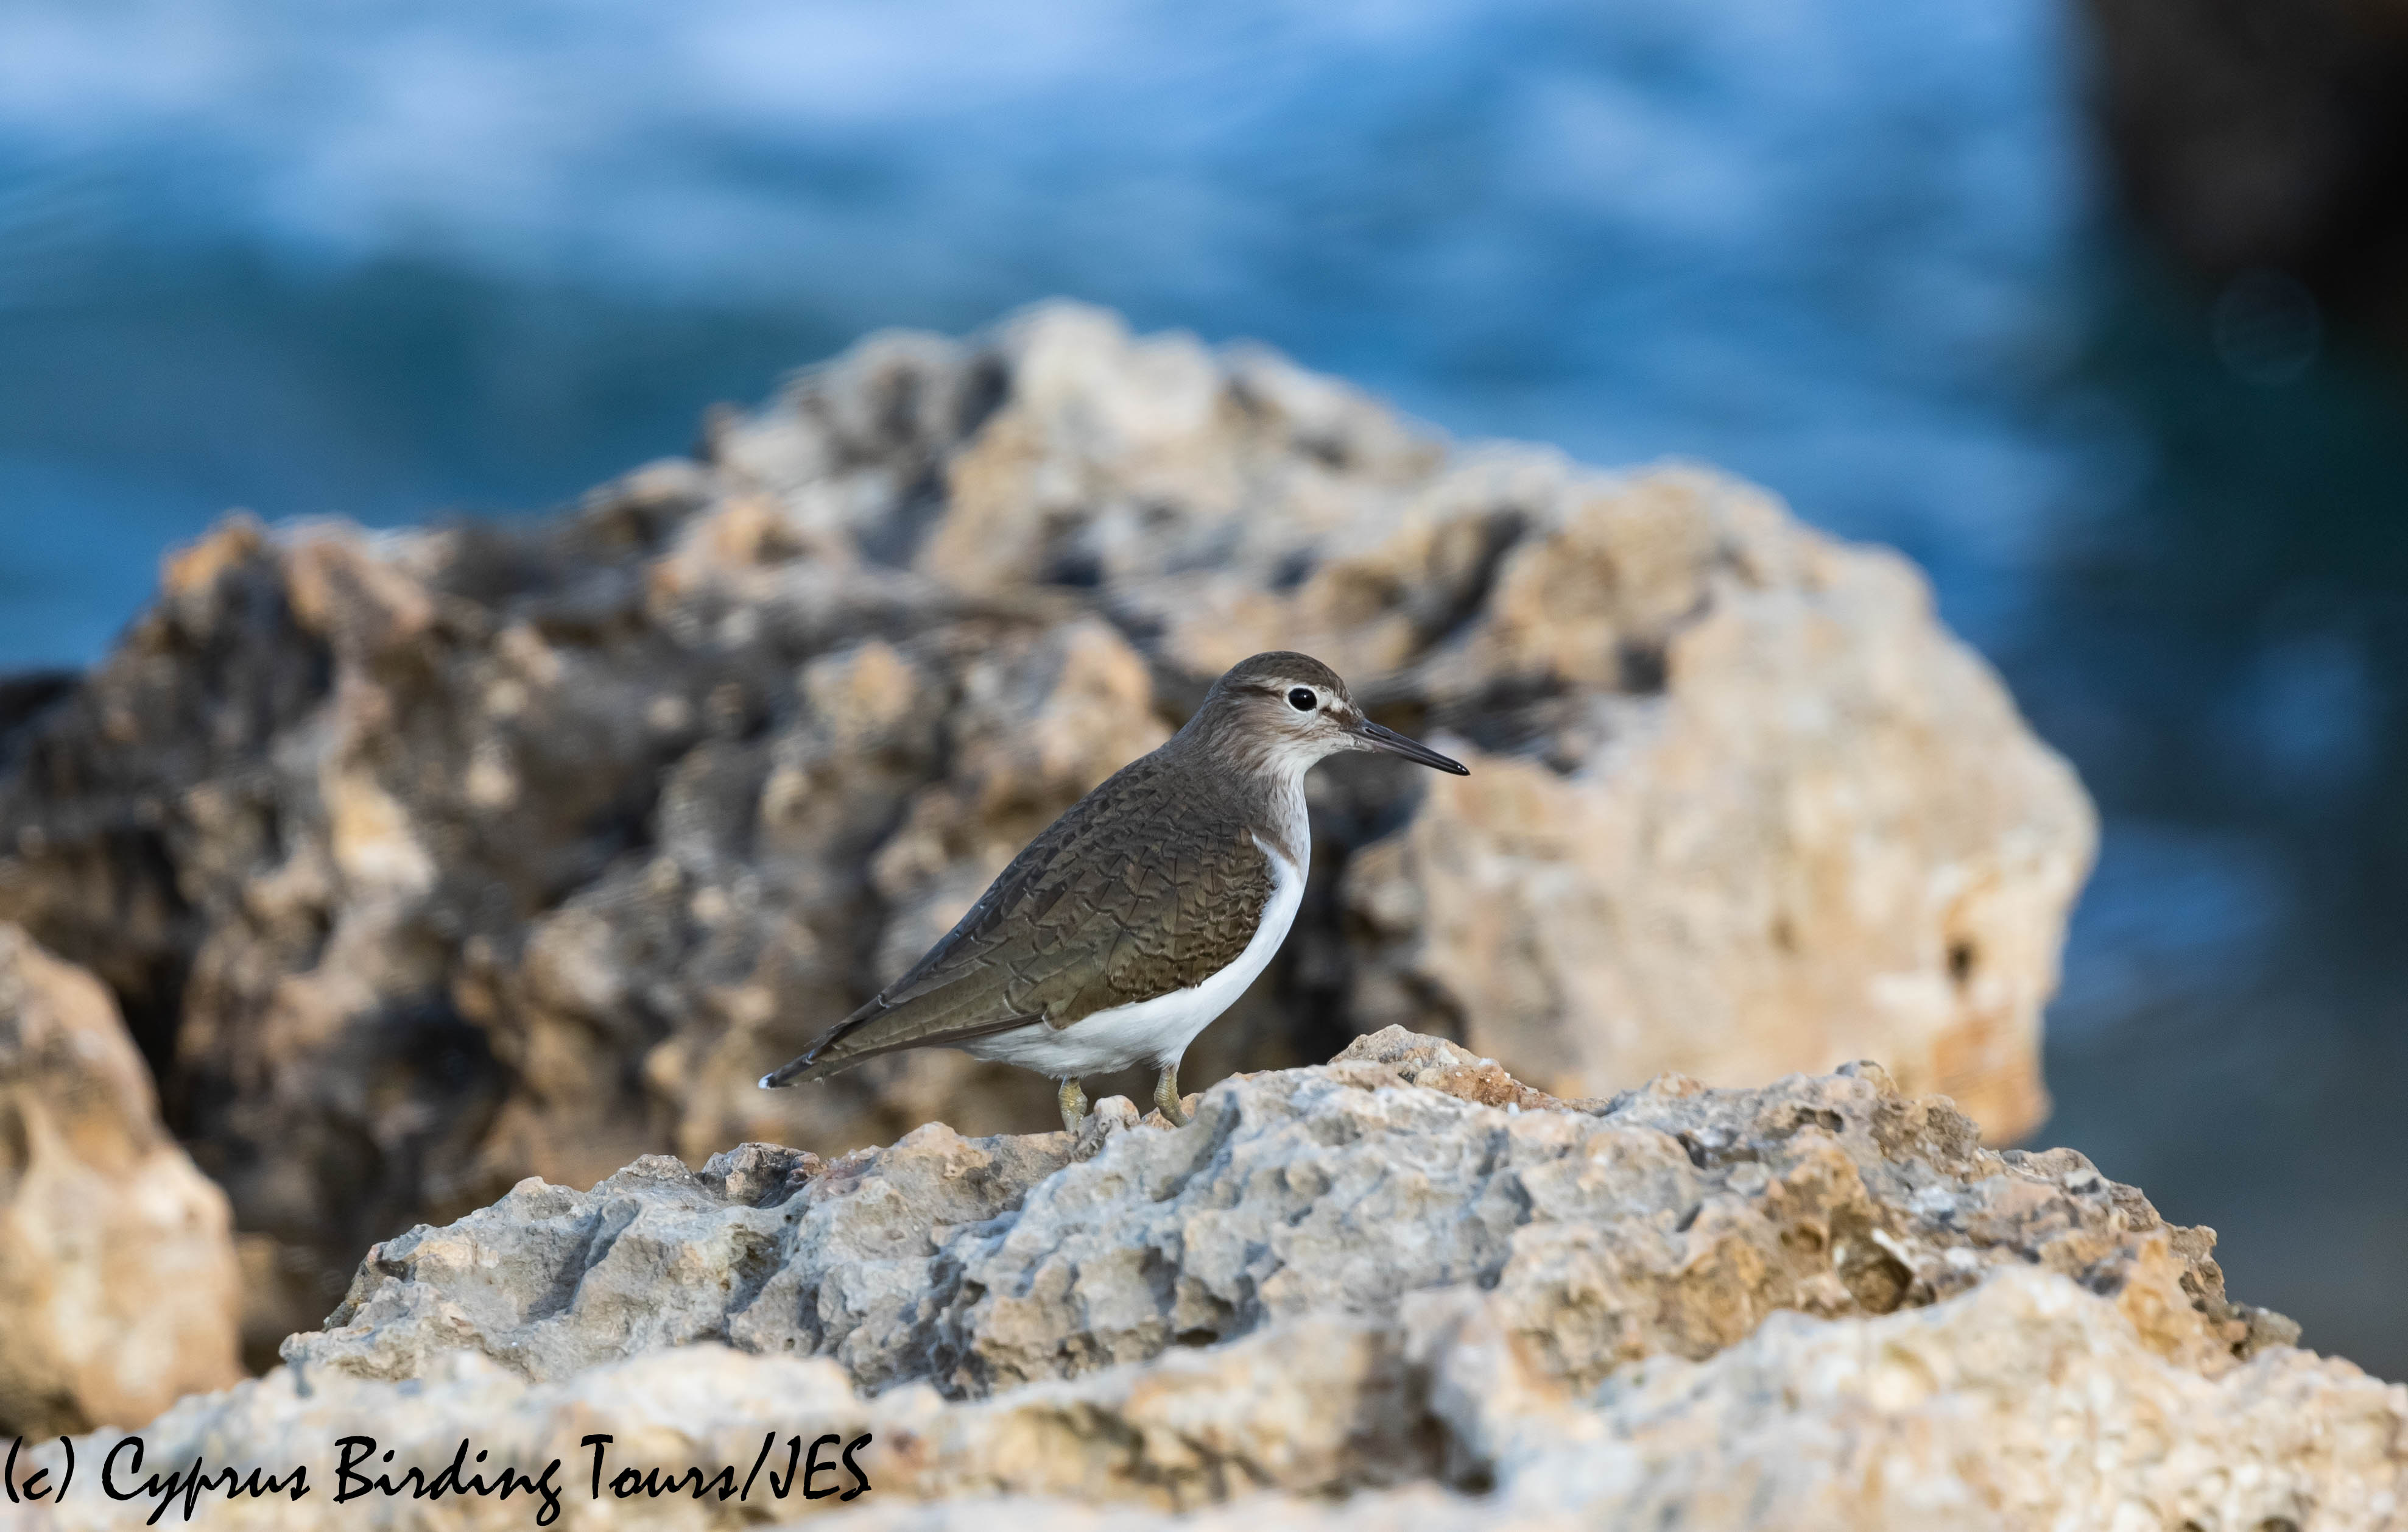 Common Sandpiper, Potamos Liopetriou, 5th January 2019 (c) Cyprus Birding Tours